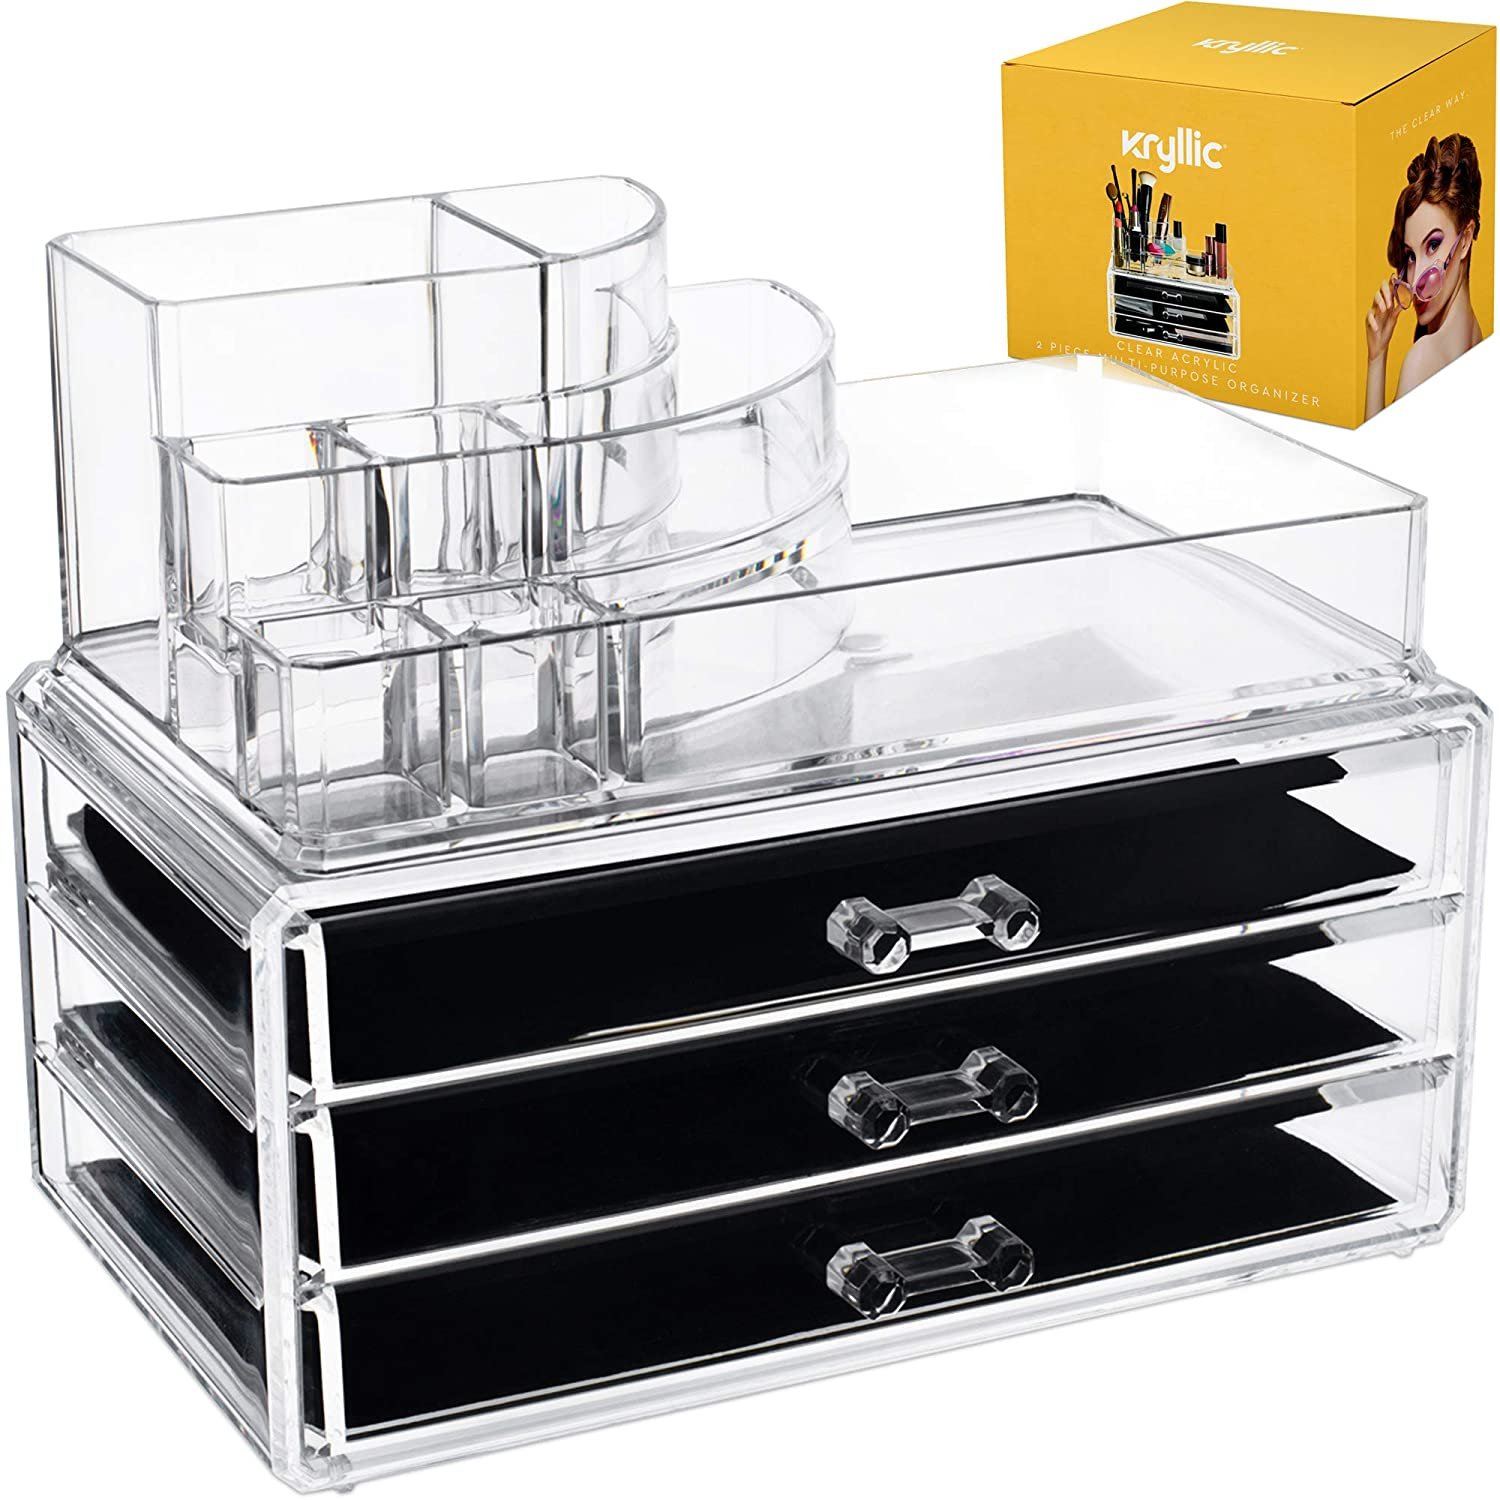 Acrylic Makeup Cosmetic Storage Organizer - 3 case drawer with 8 slot organizers for brush palette lipstick pens make up nailpolish lotion and creams! Countertop box tray drawers for vanity or bedroom COMIN18JU002356